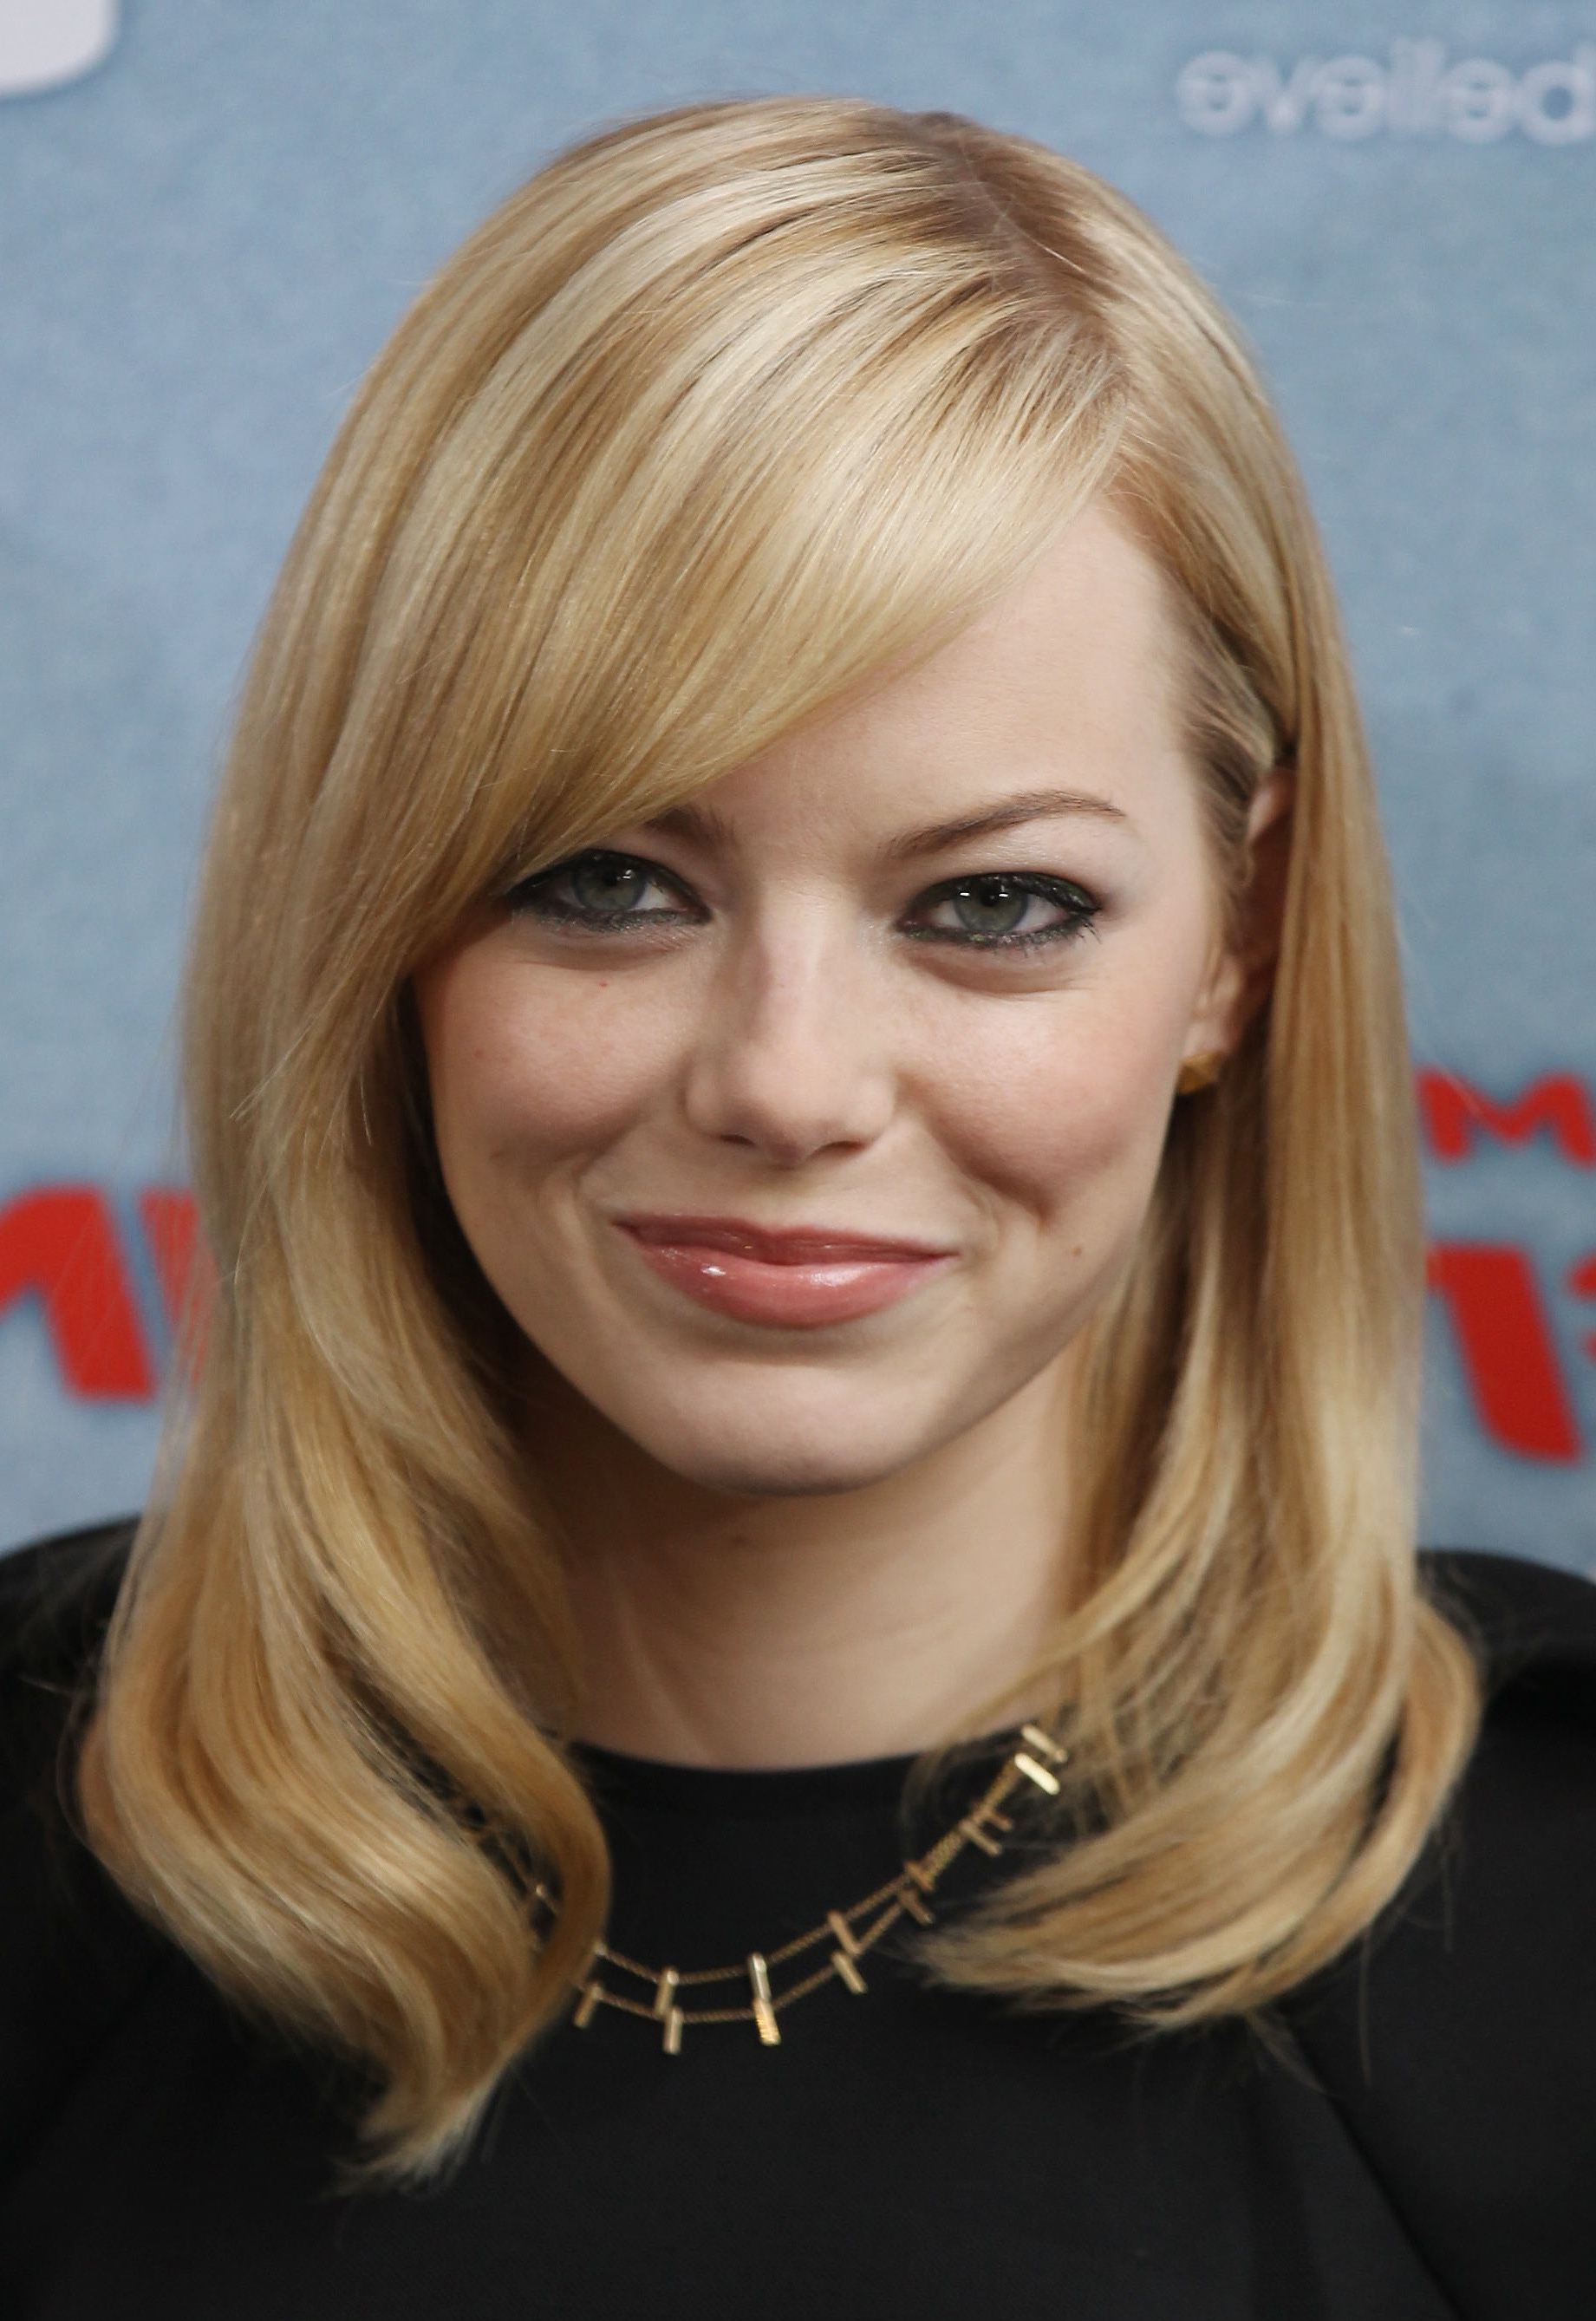 Flattering Celebrity Hairstyles For Round Faces (Gallery 19 of 20)